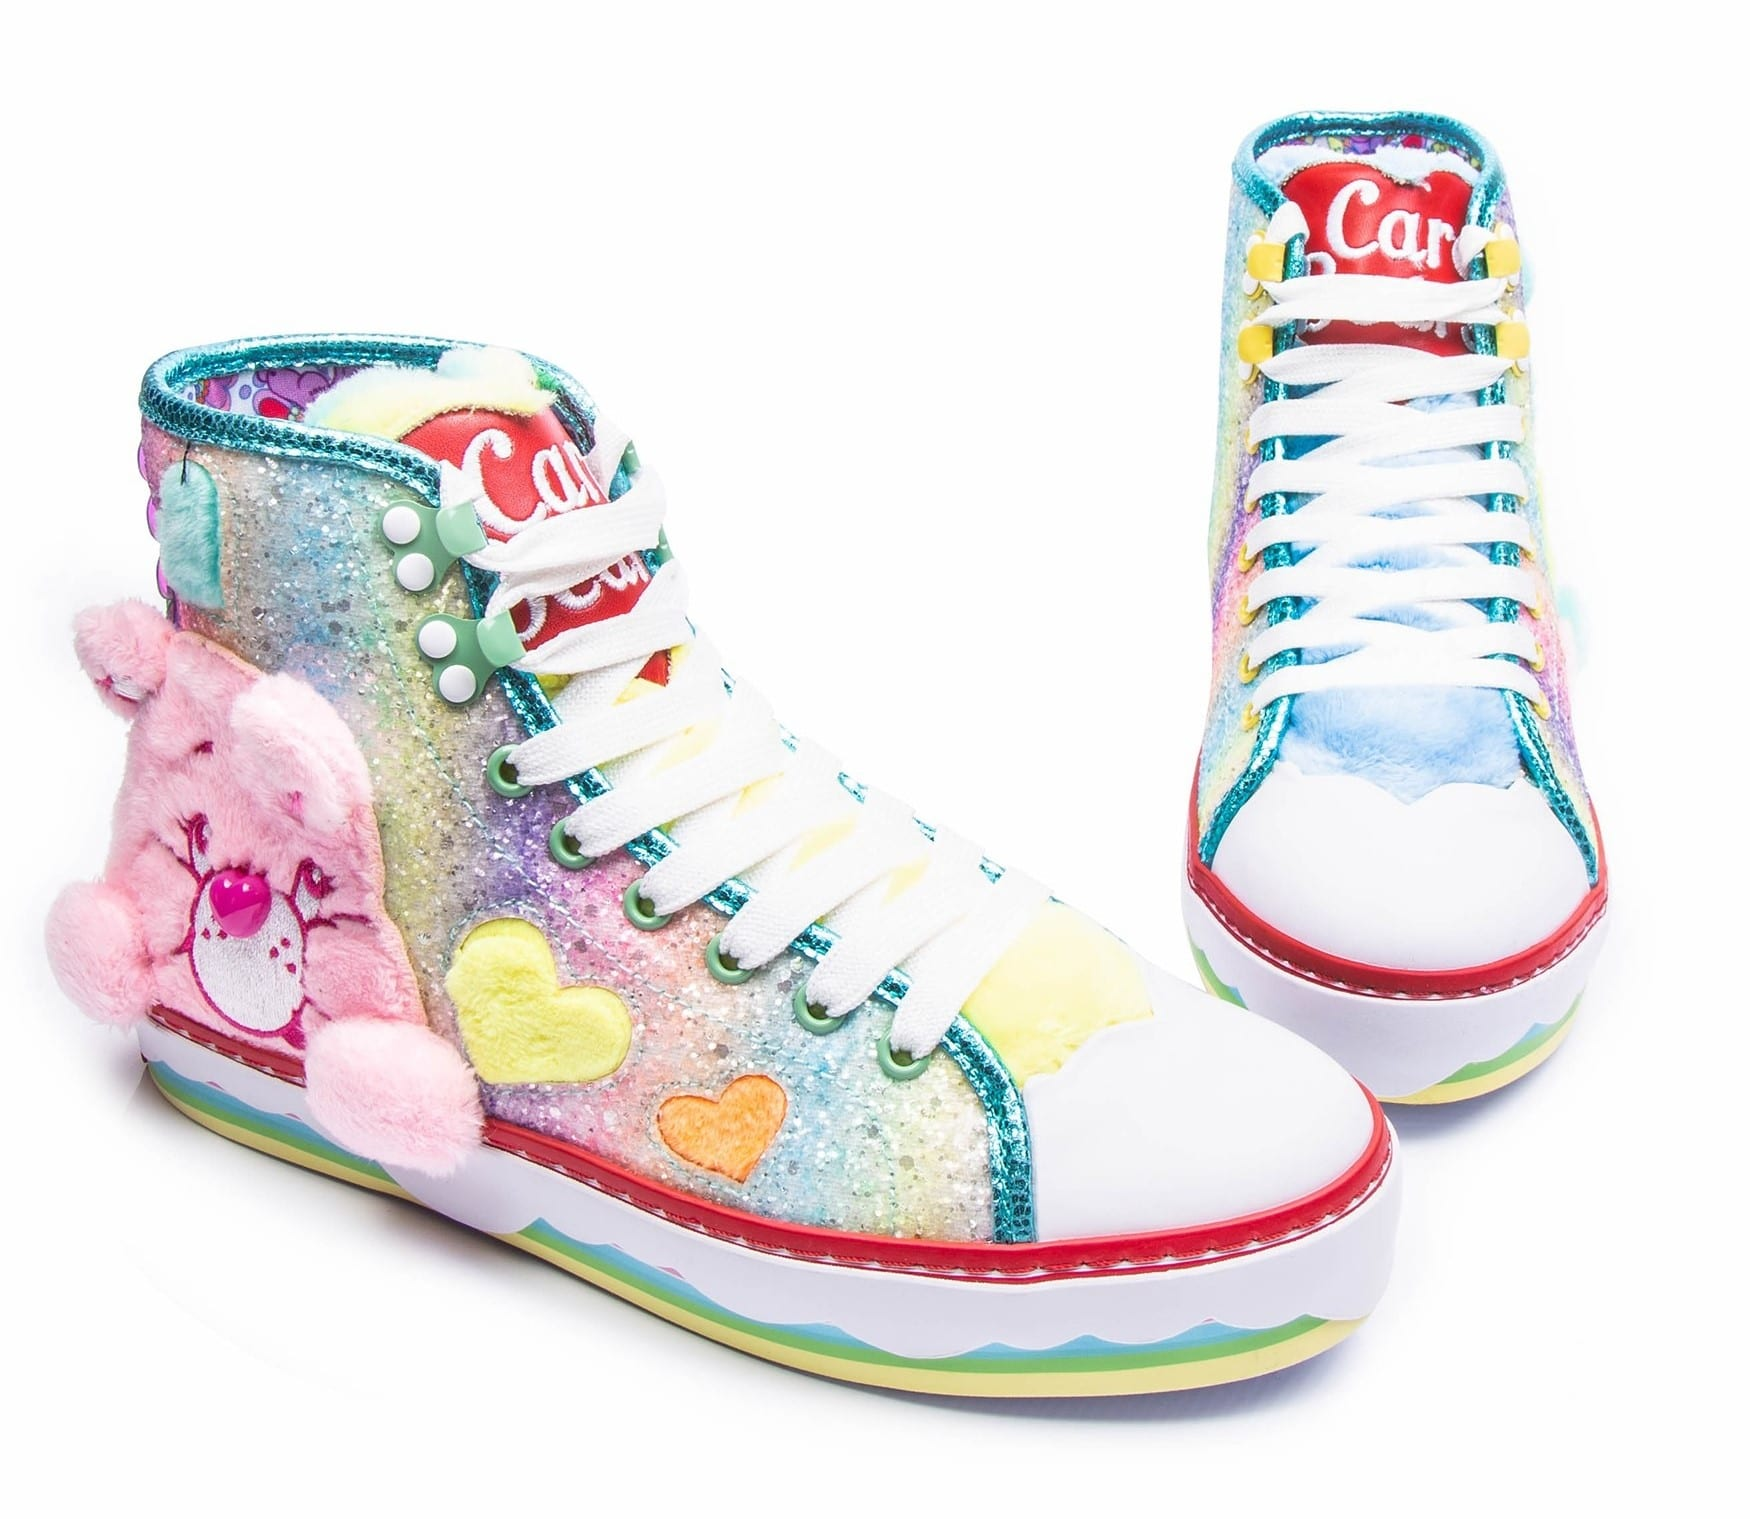 Irregular Choice Care Bears collection includes outrageous furry shoes 14